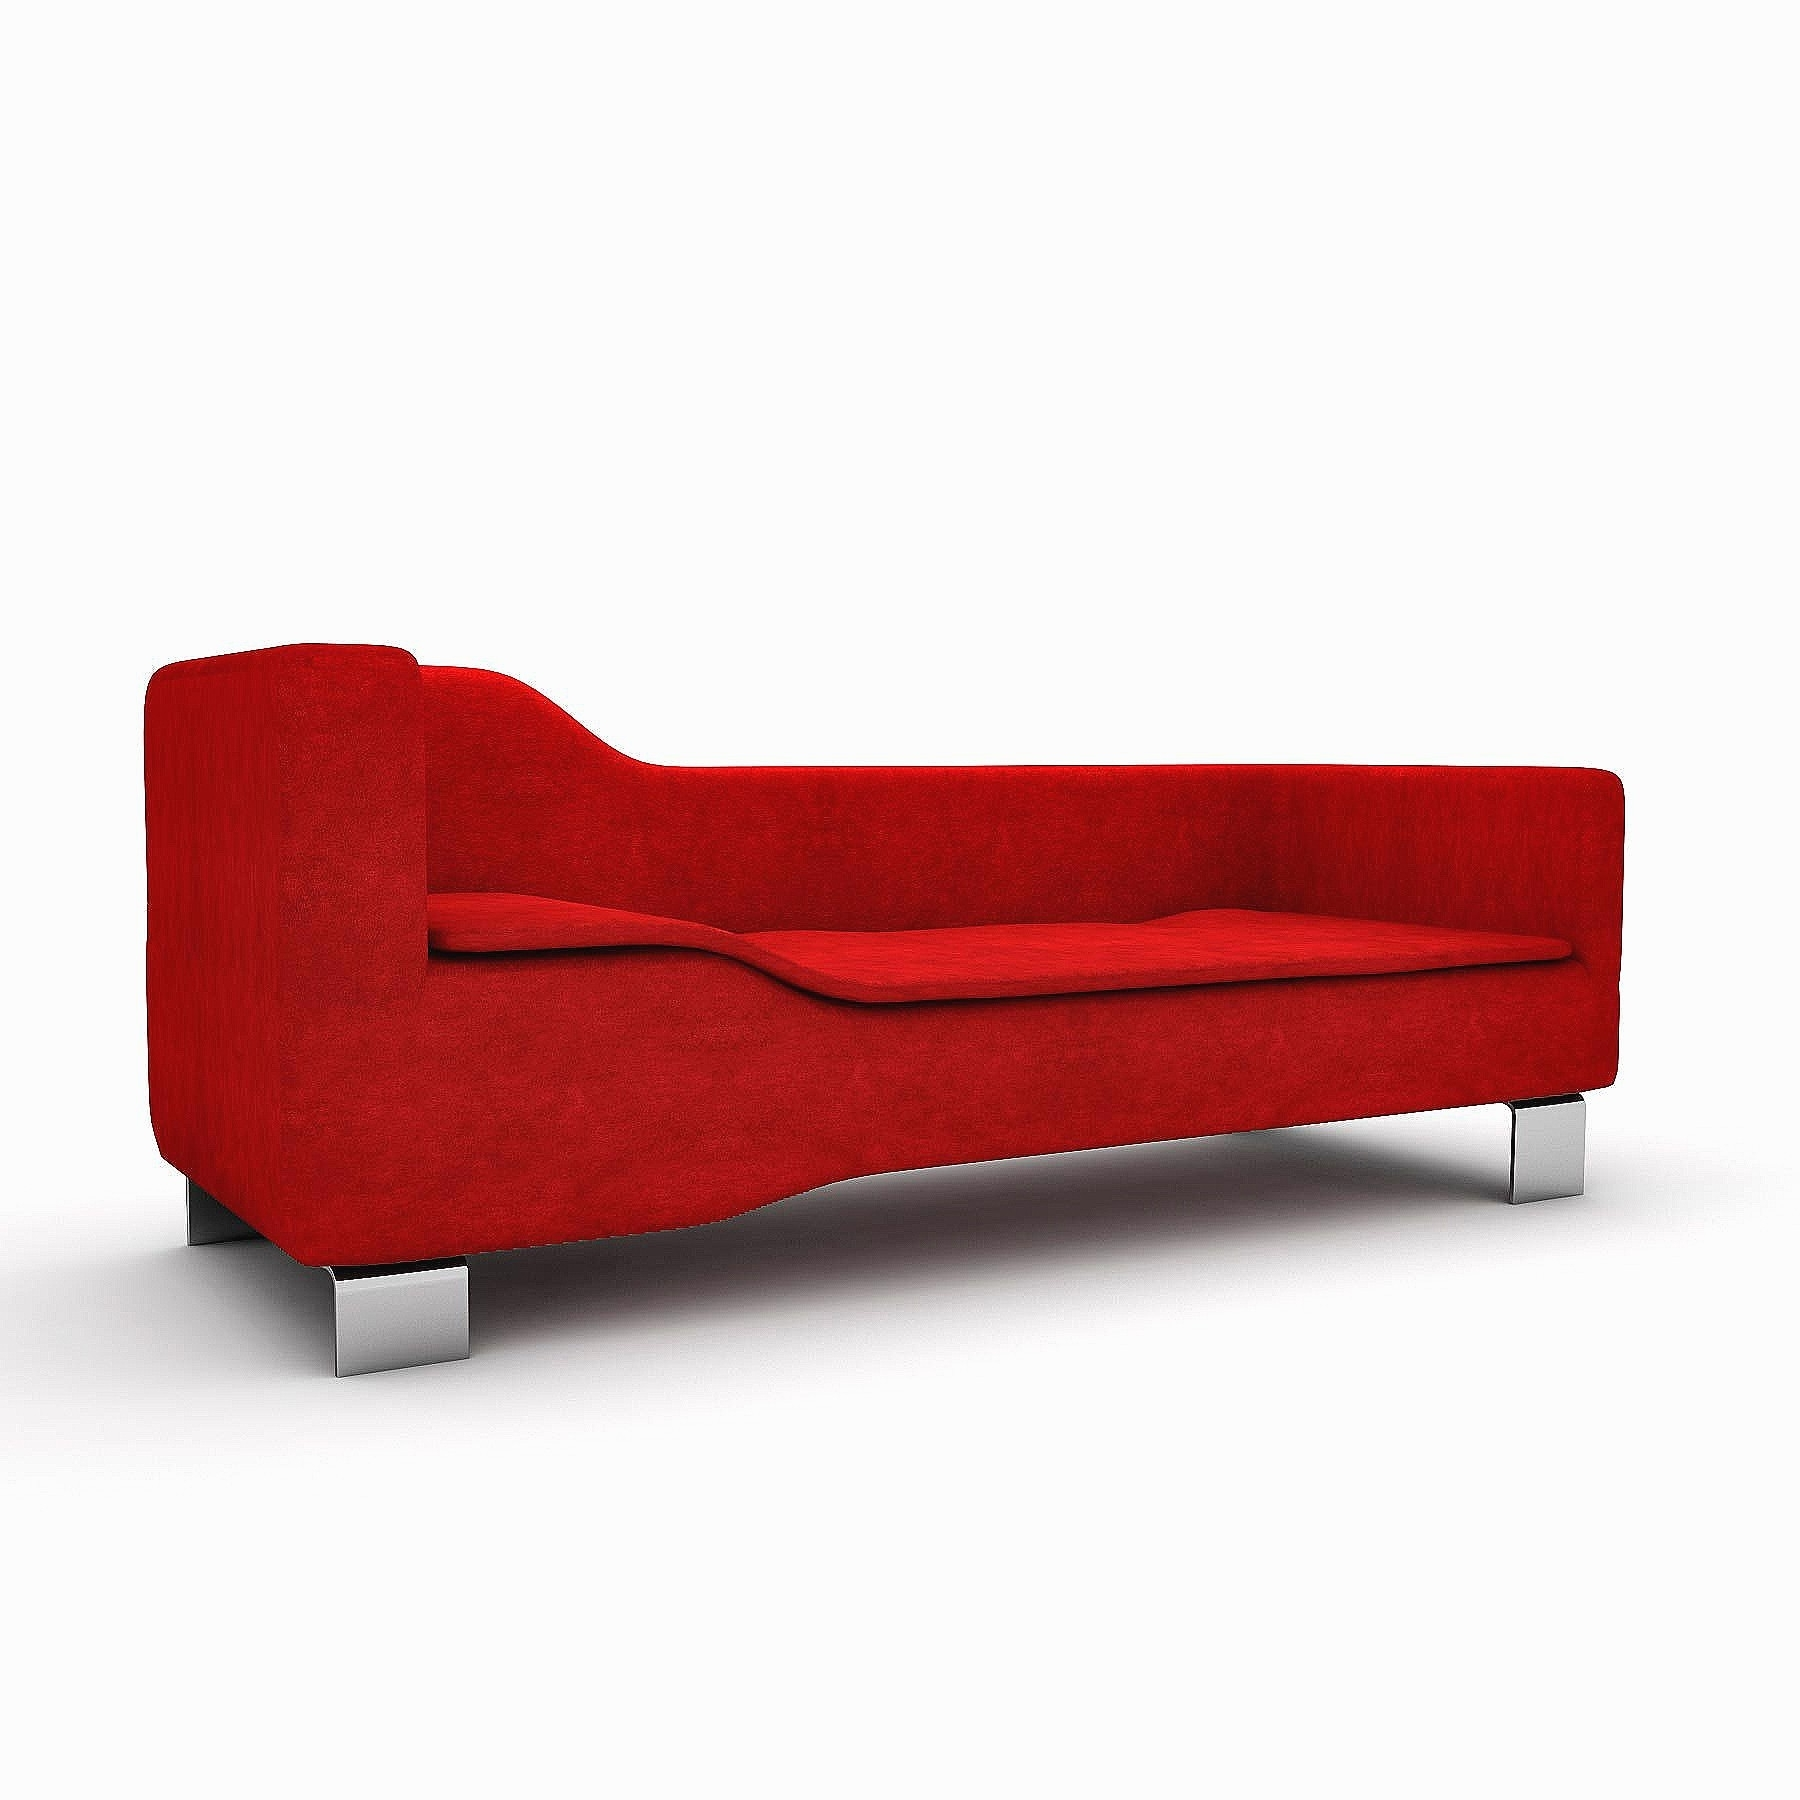 Popular Picture 5 Of 34 – Leather Chaise Lounge Chair Beautiful 9 Modern Pertaining To Red Leather Chaises (View 10 of 15)